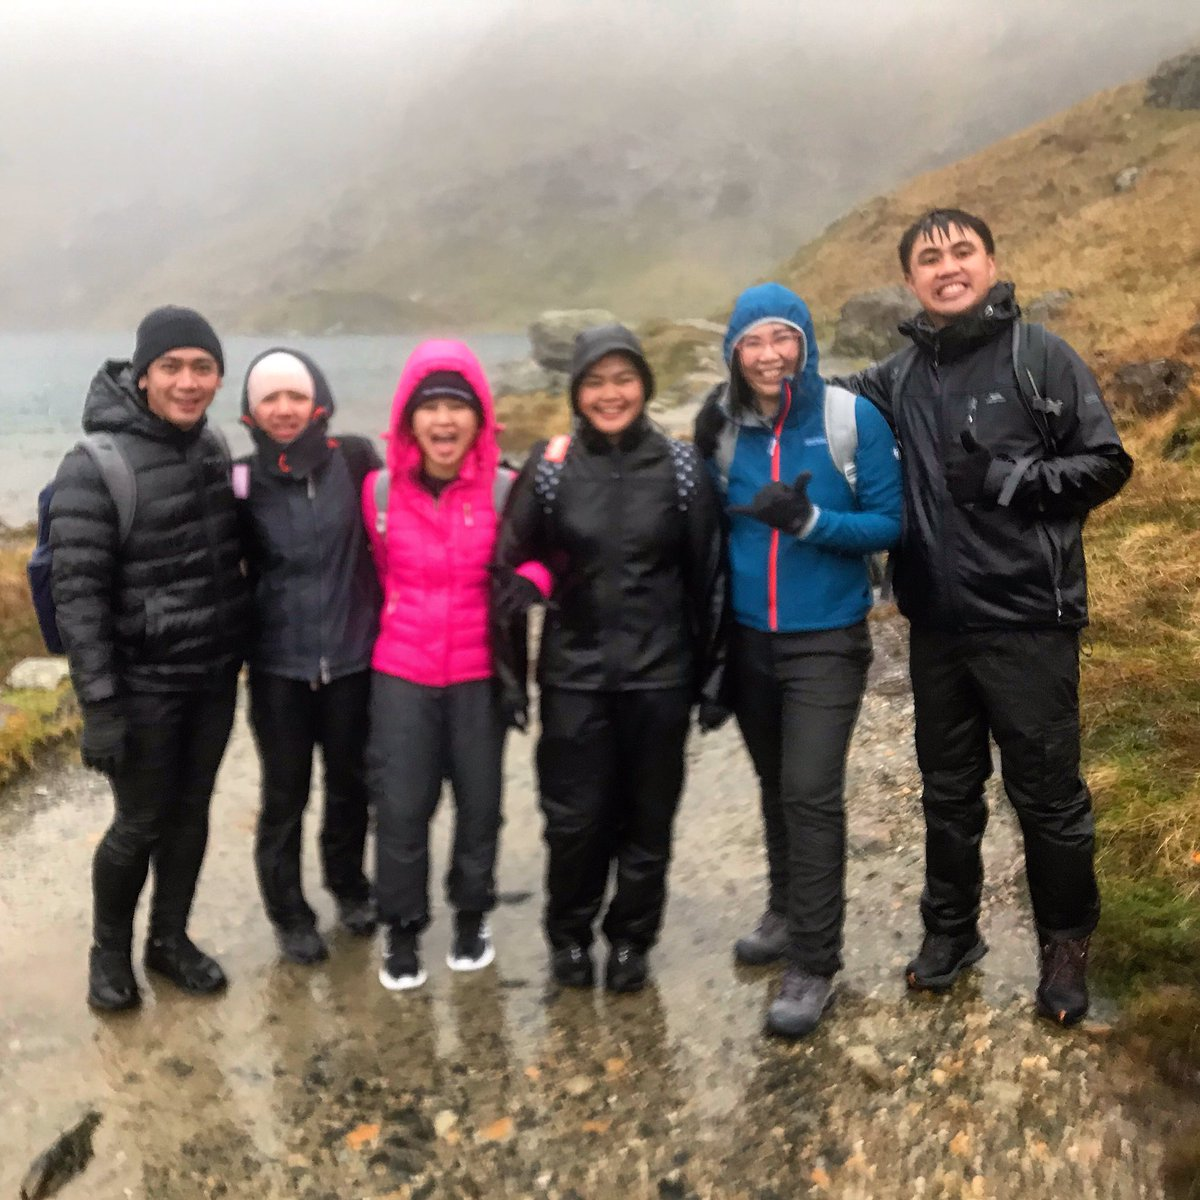 No summit today but an invigorating walk in some pretty awful weather! Fortunately my team had a good sense of humour and not easily put off #nurses 💪🏽#wetthrough